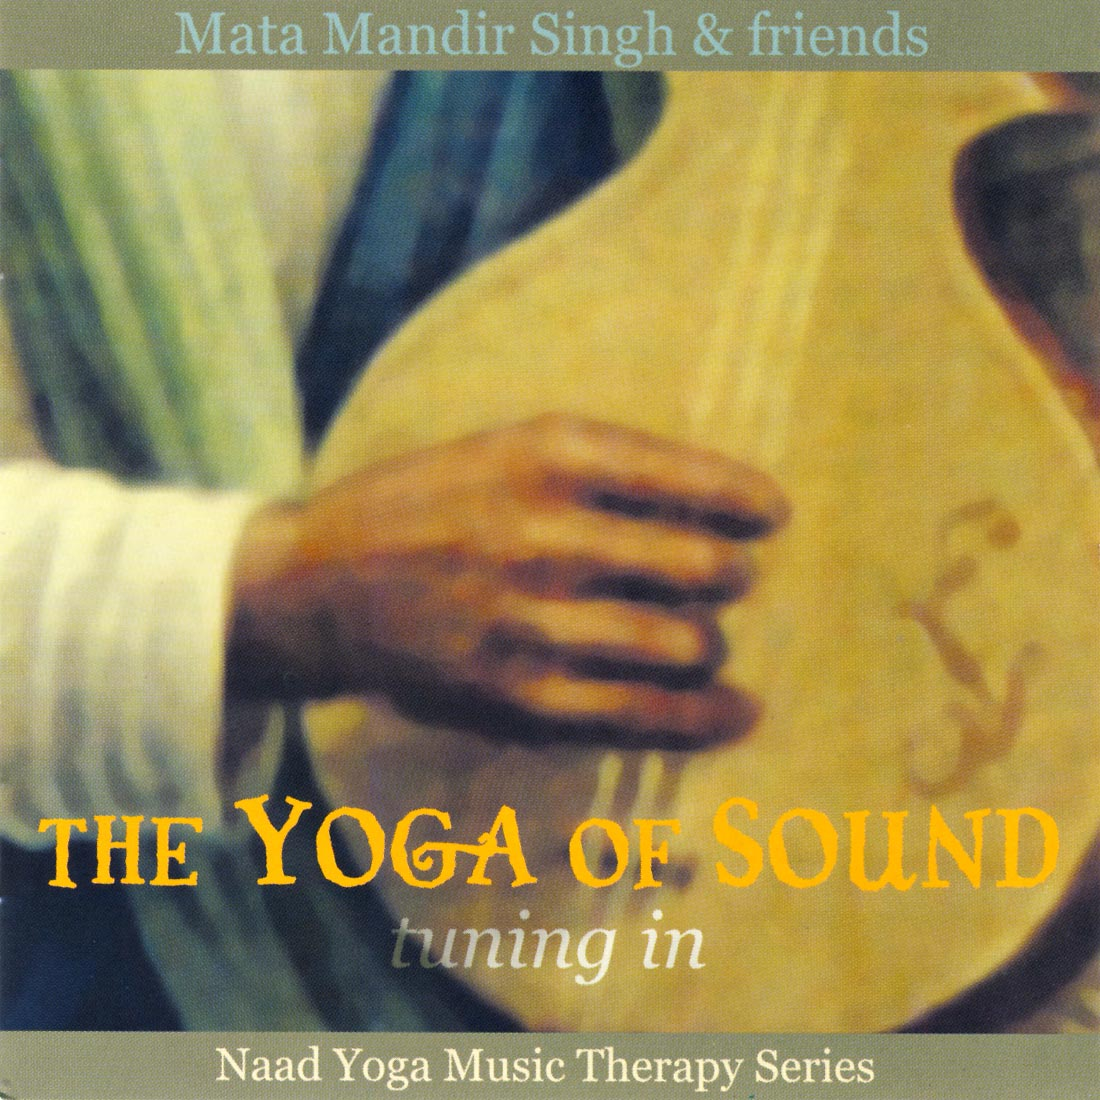 Tuning in - Mata Mandir Singh & Friends CD